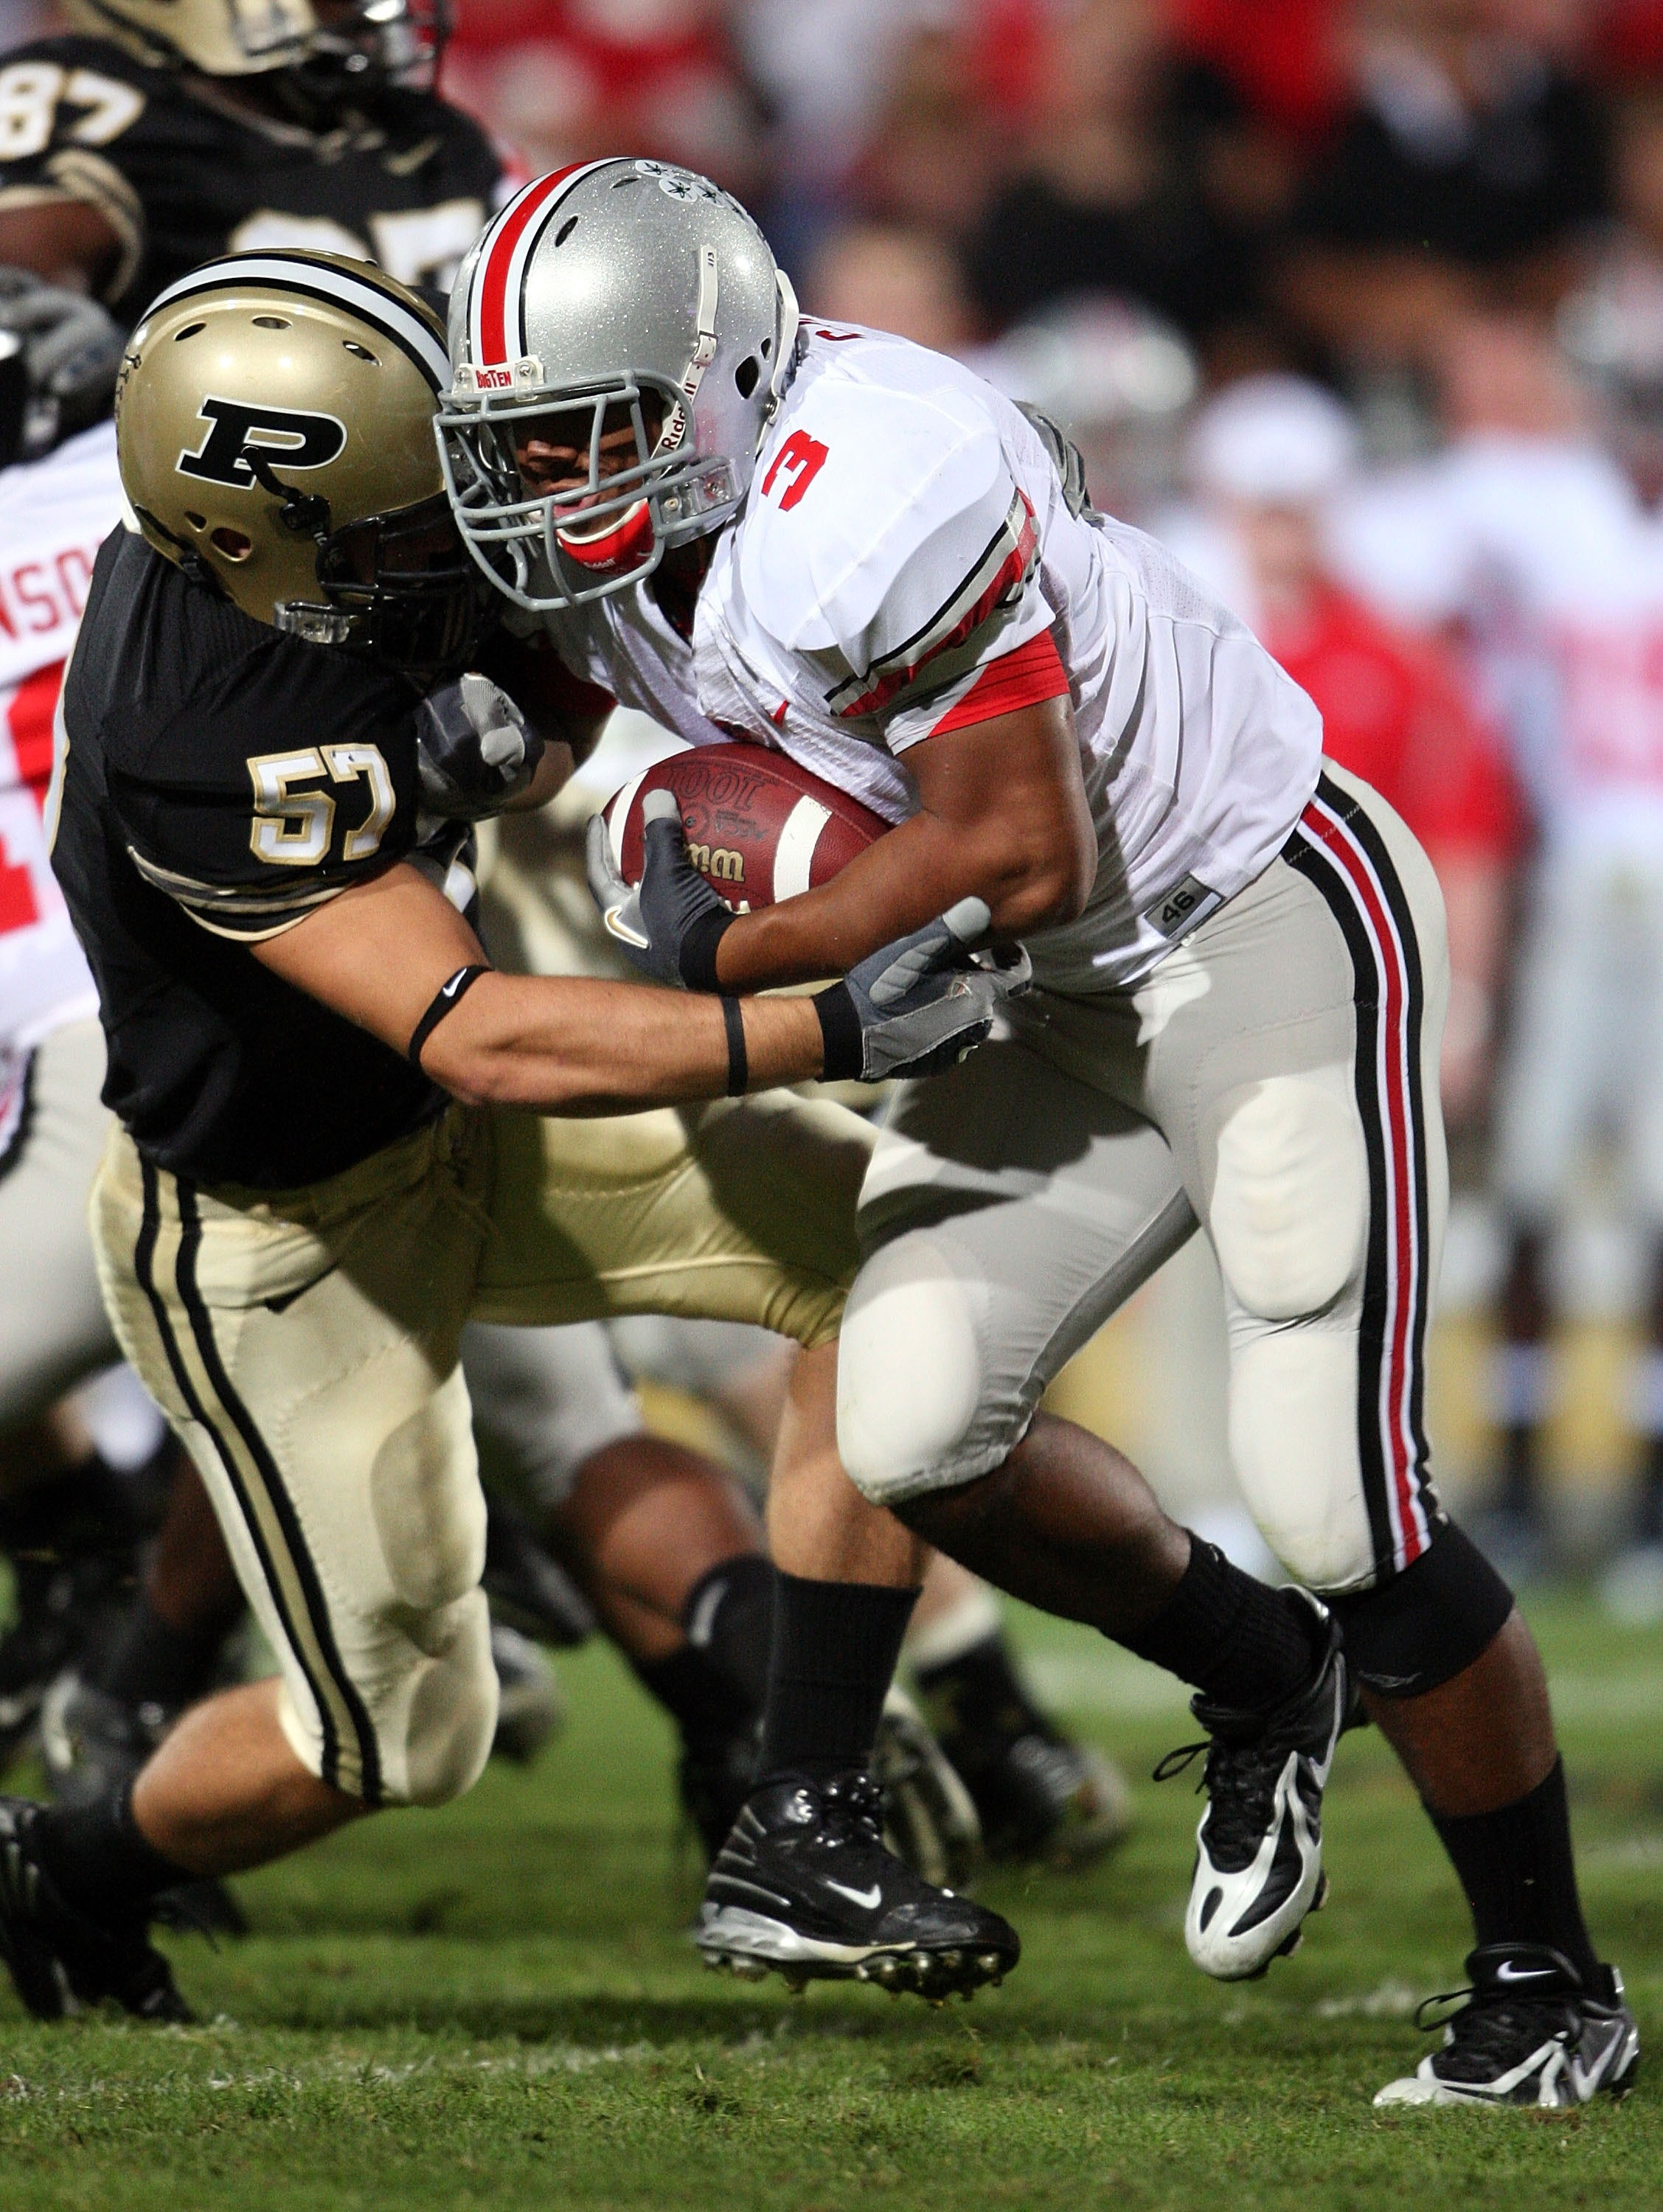 WEST LAFAYETTE, IN - OCTOBER 06:  Brandon Saine #3 of the Ohio State Buckeyes runs with the ball while defended by Tyler Haston #57 the Purdue Boilermakers during the game on October 6, 2007 at Ross-Ade Stadium in West Lafayette, Indiana.  (Photo by Andy